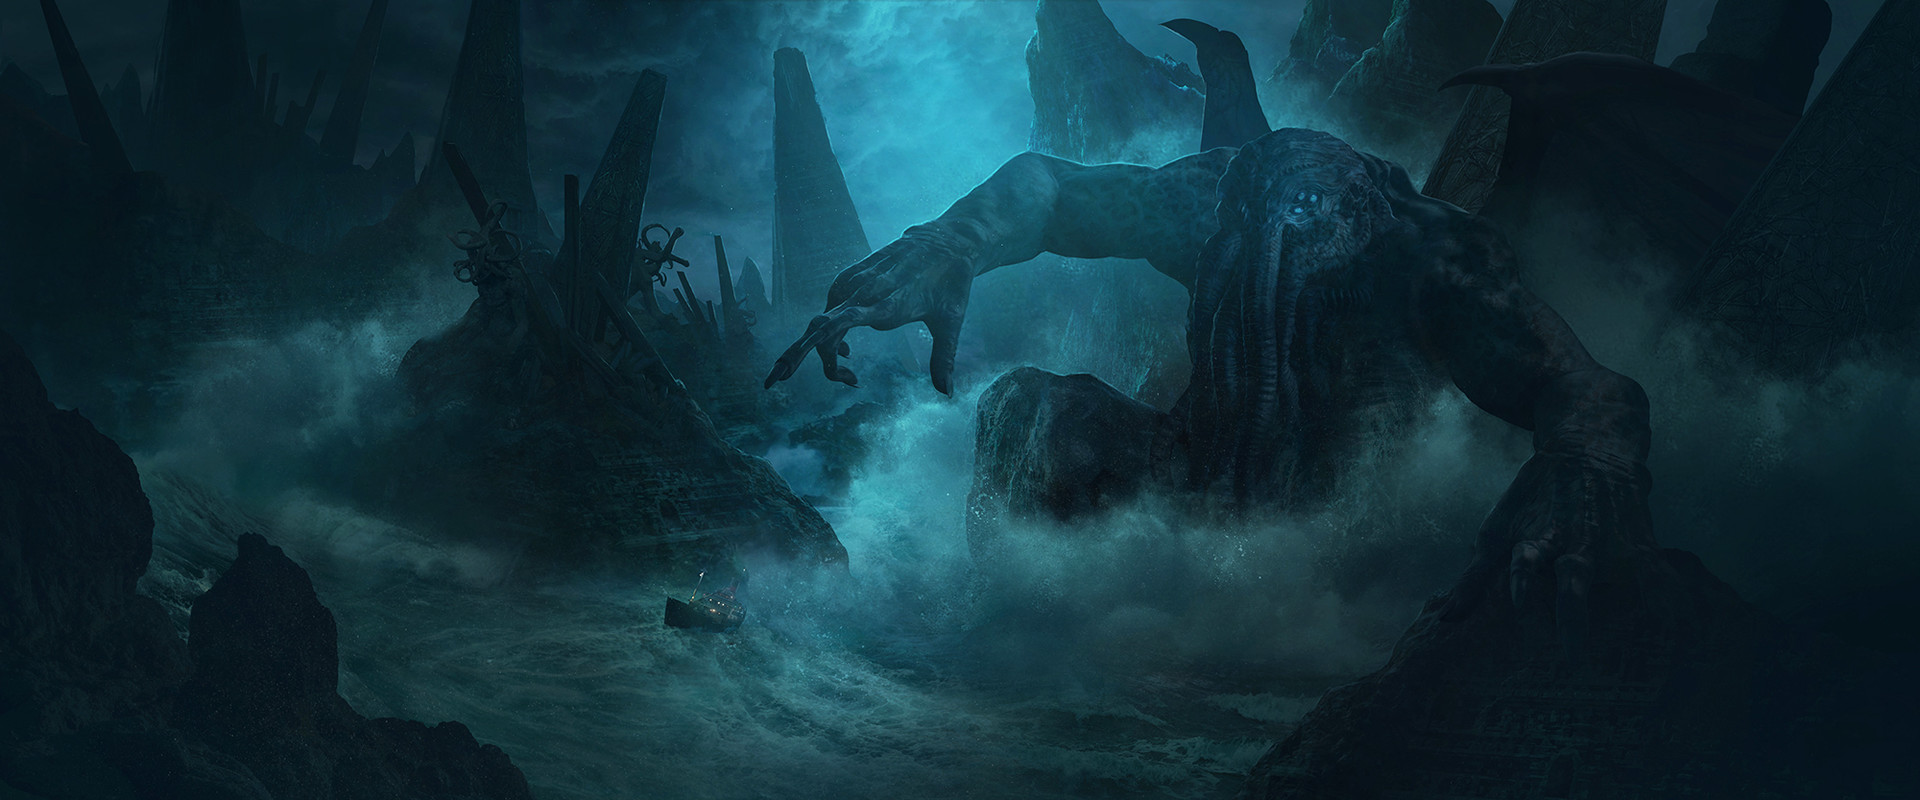 H.P. LOVECRAFT The Fear from beyond - The rise of Cthulhu